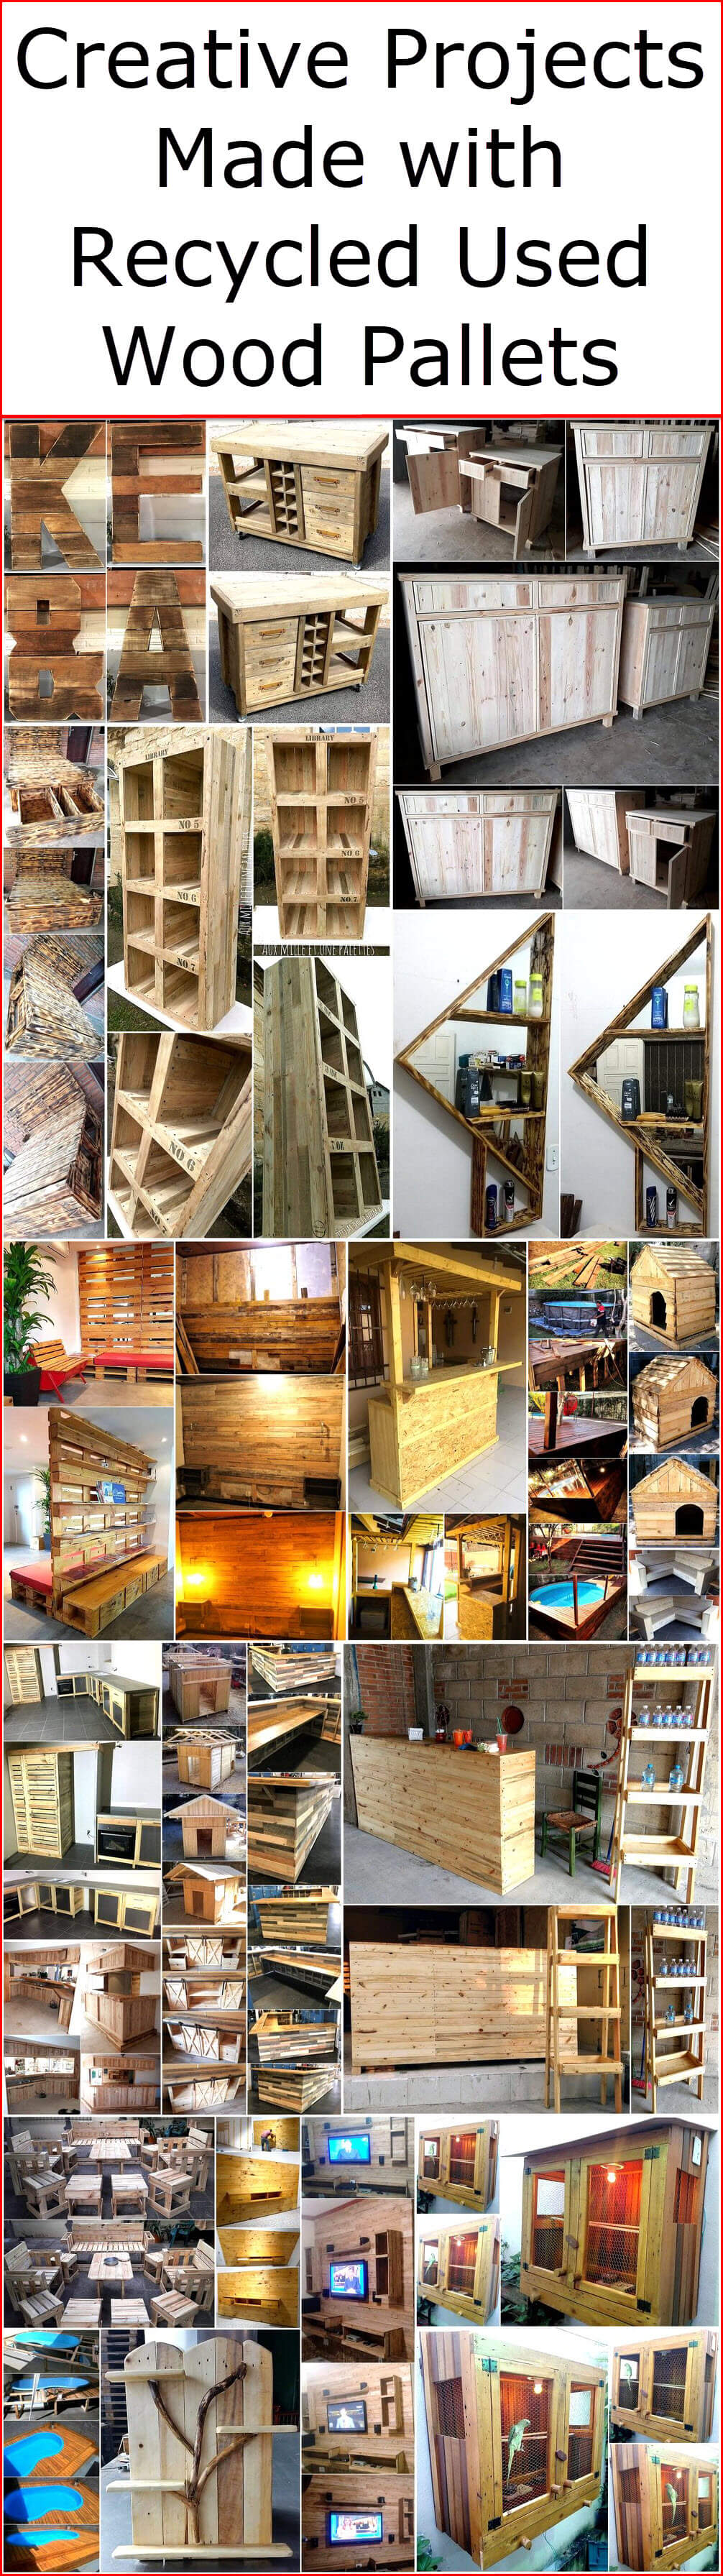 Creative Projects Made with Recycled Used Wood Pallets